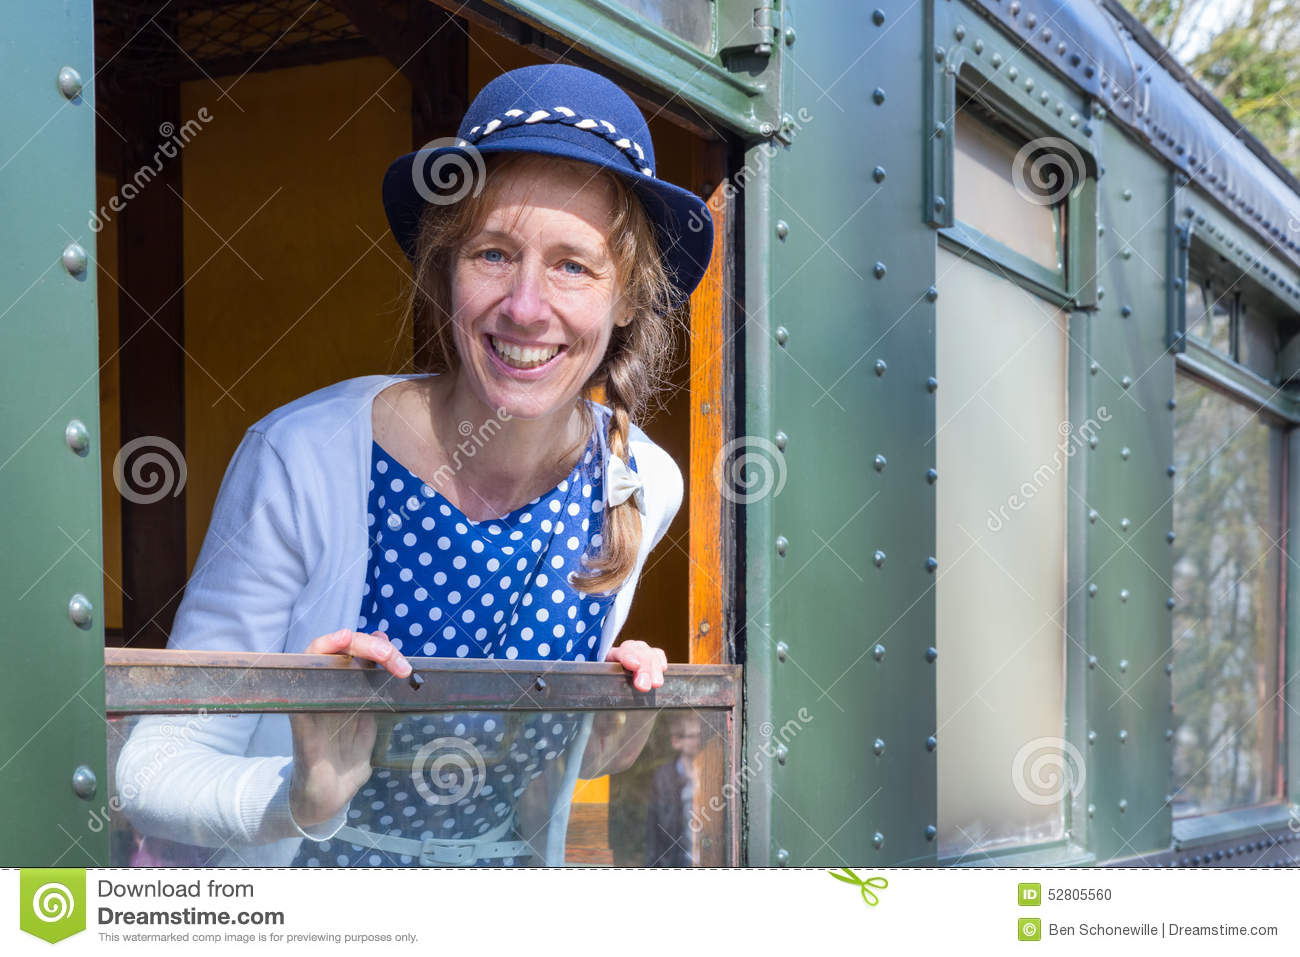 Woman in old-fashioned clothes in window of steam train